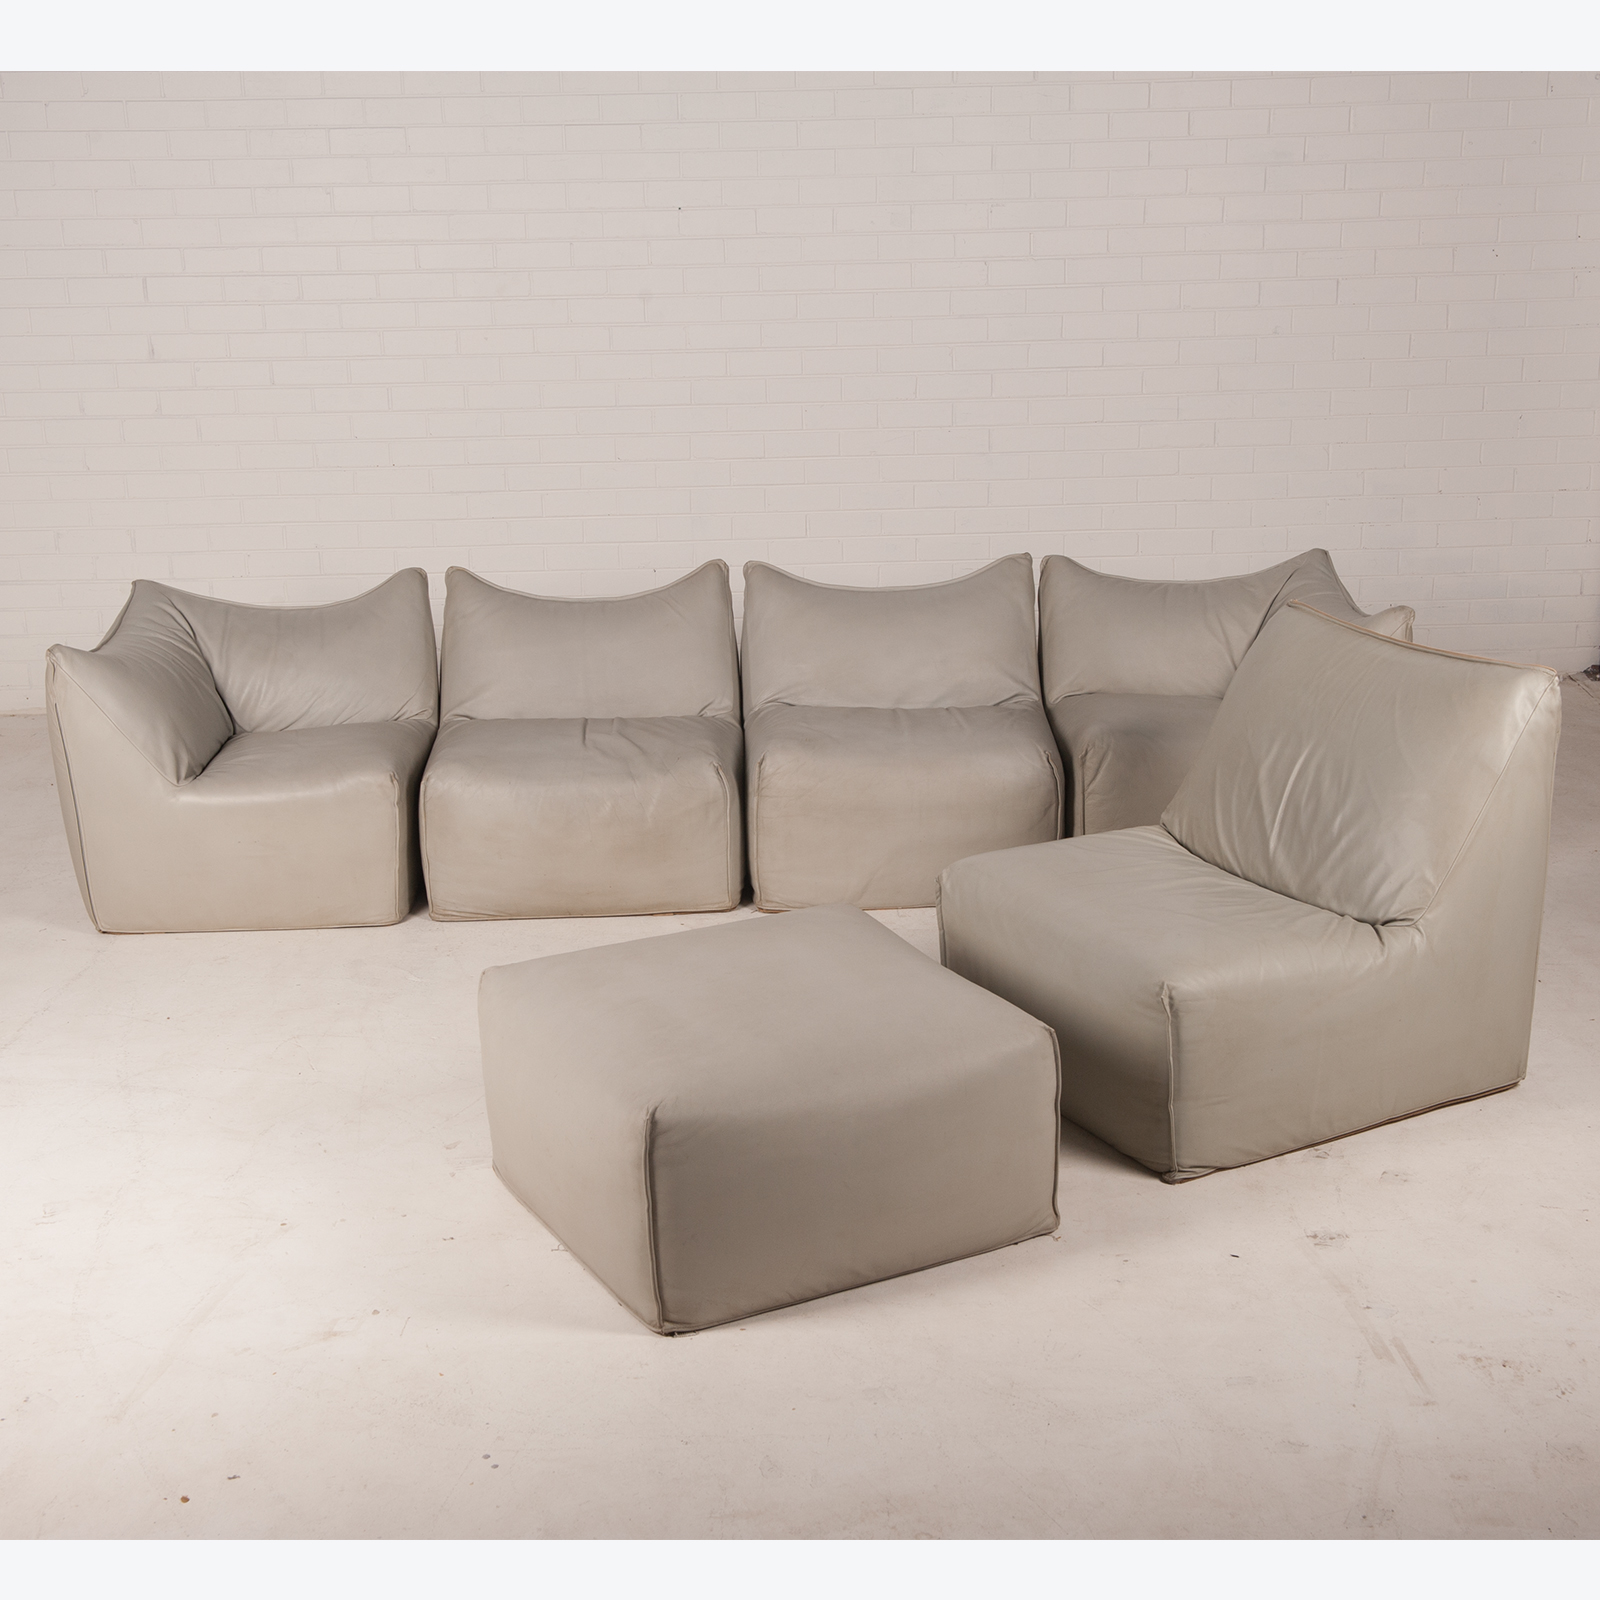 Bambole Suite by Mario Bellini for B&B Italia with Sofa, Chair, & Ottoman in Leather 1972, Italy